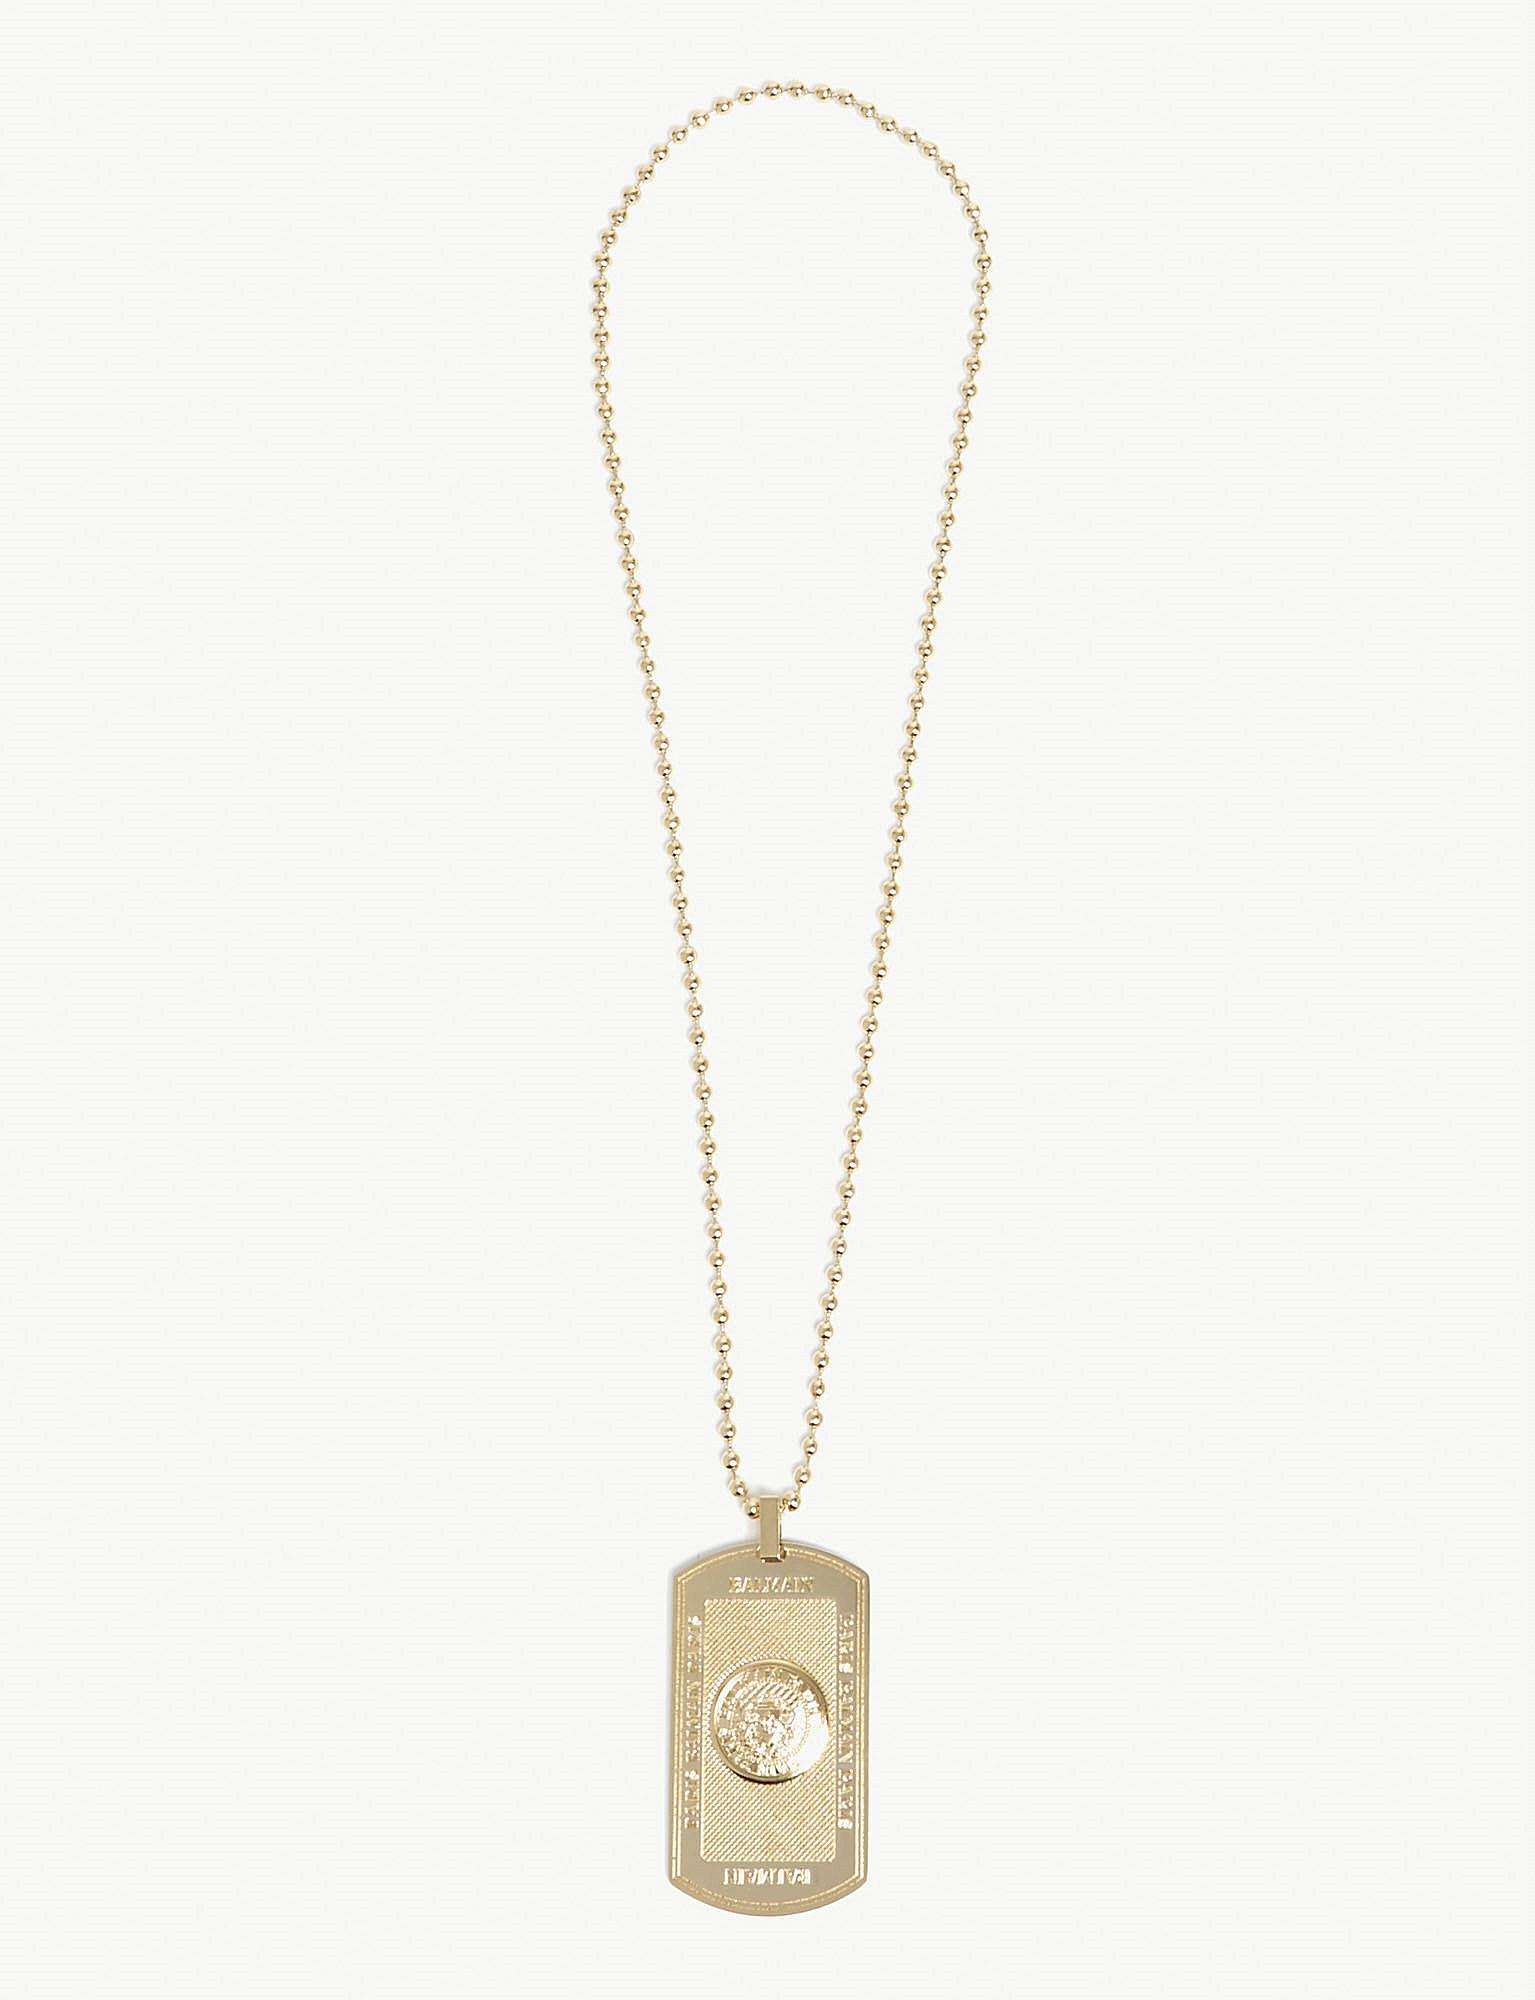 Balmain engraved tag necklace - Metallic Qu887RgI